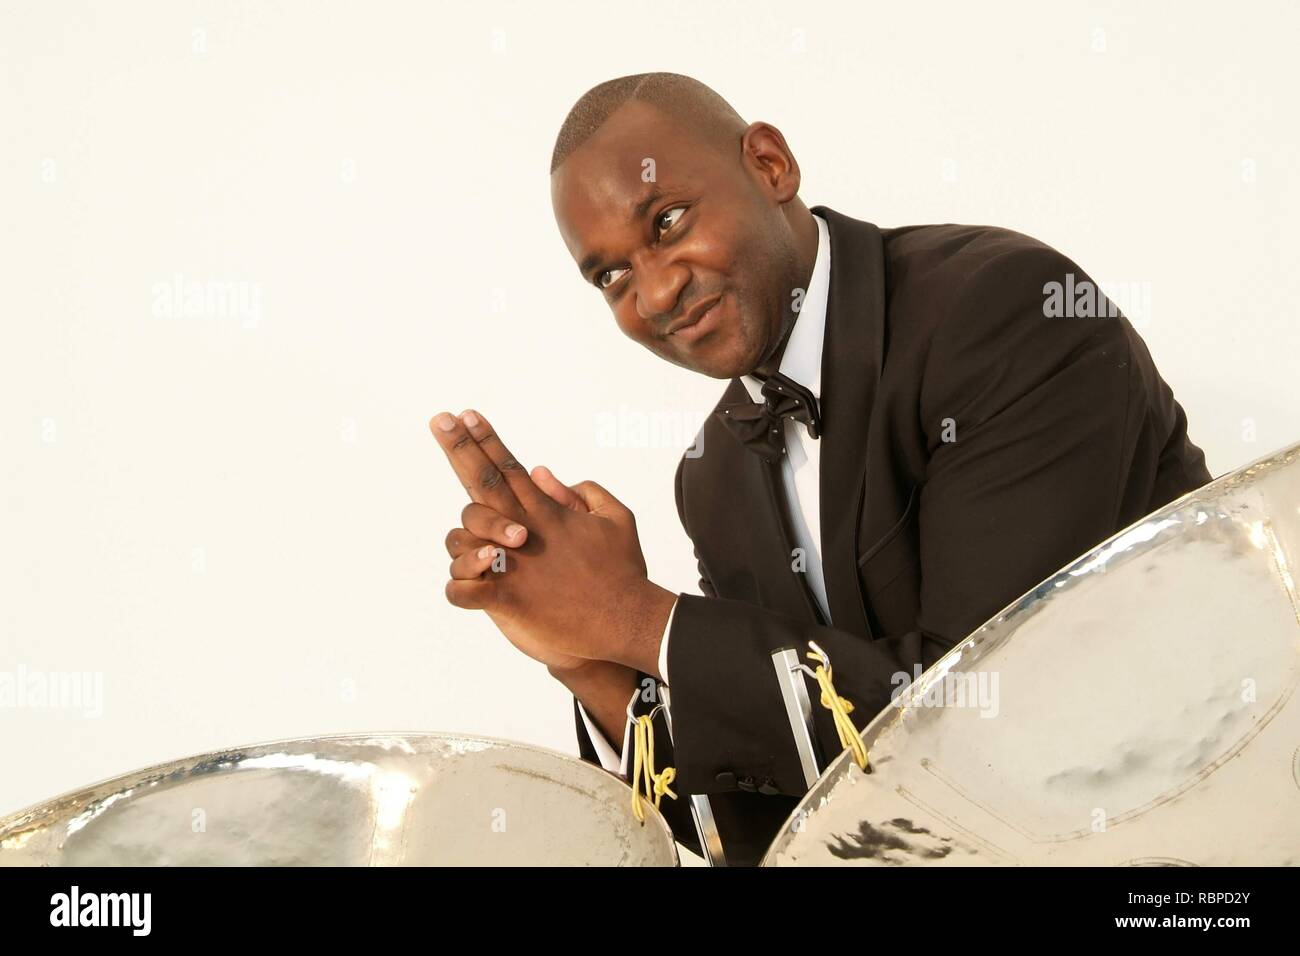 'We bring the Caribbean to you' Steelasophical Steel Band & Dj. Gary Trotman from Steelasophical Steel Band Dj hire in the UK. https://steelband.co.uk - Stock Image